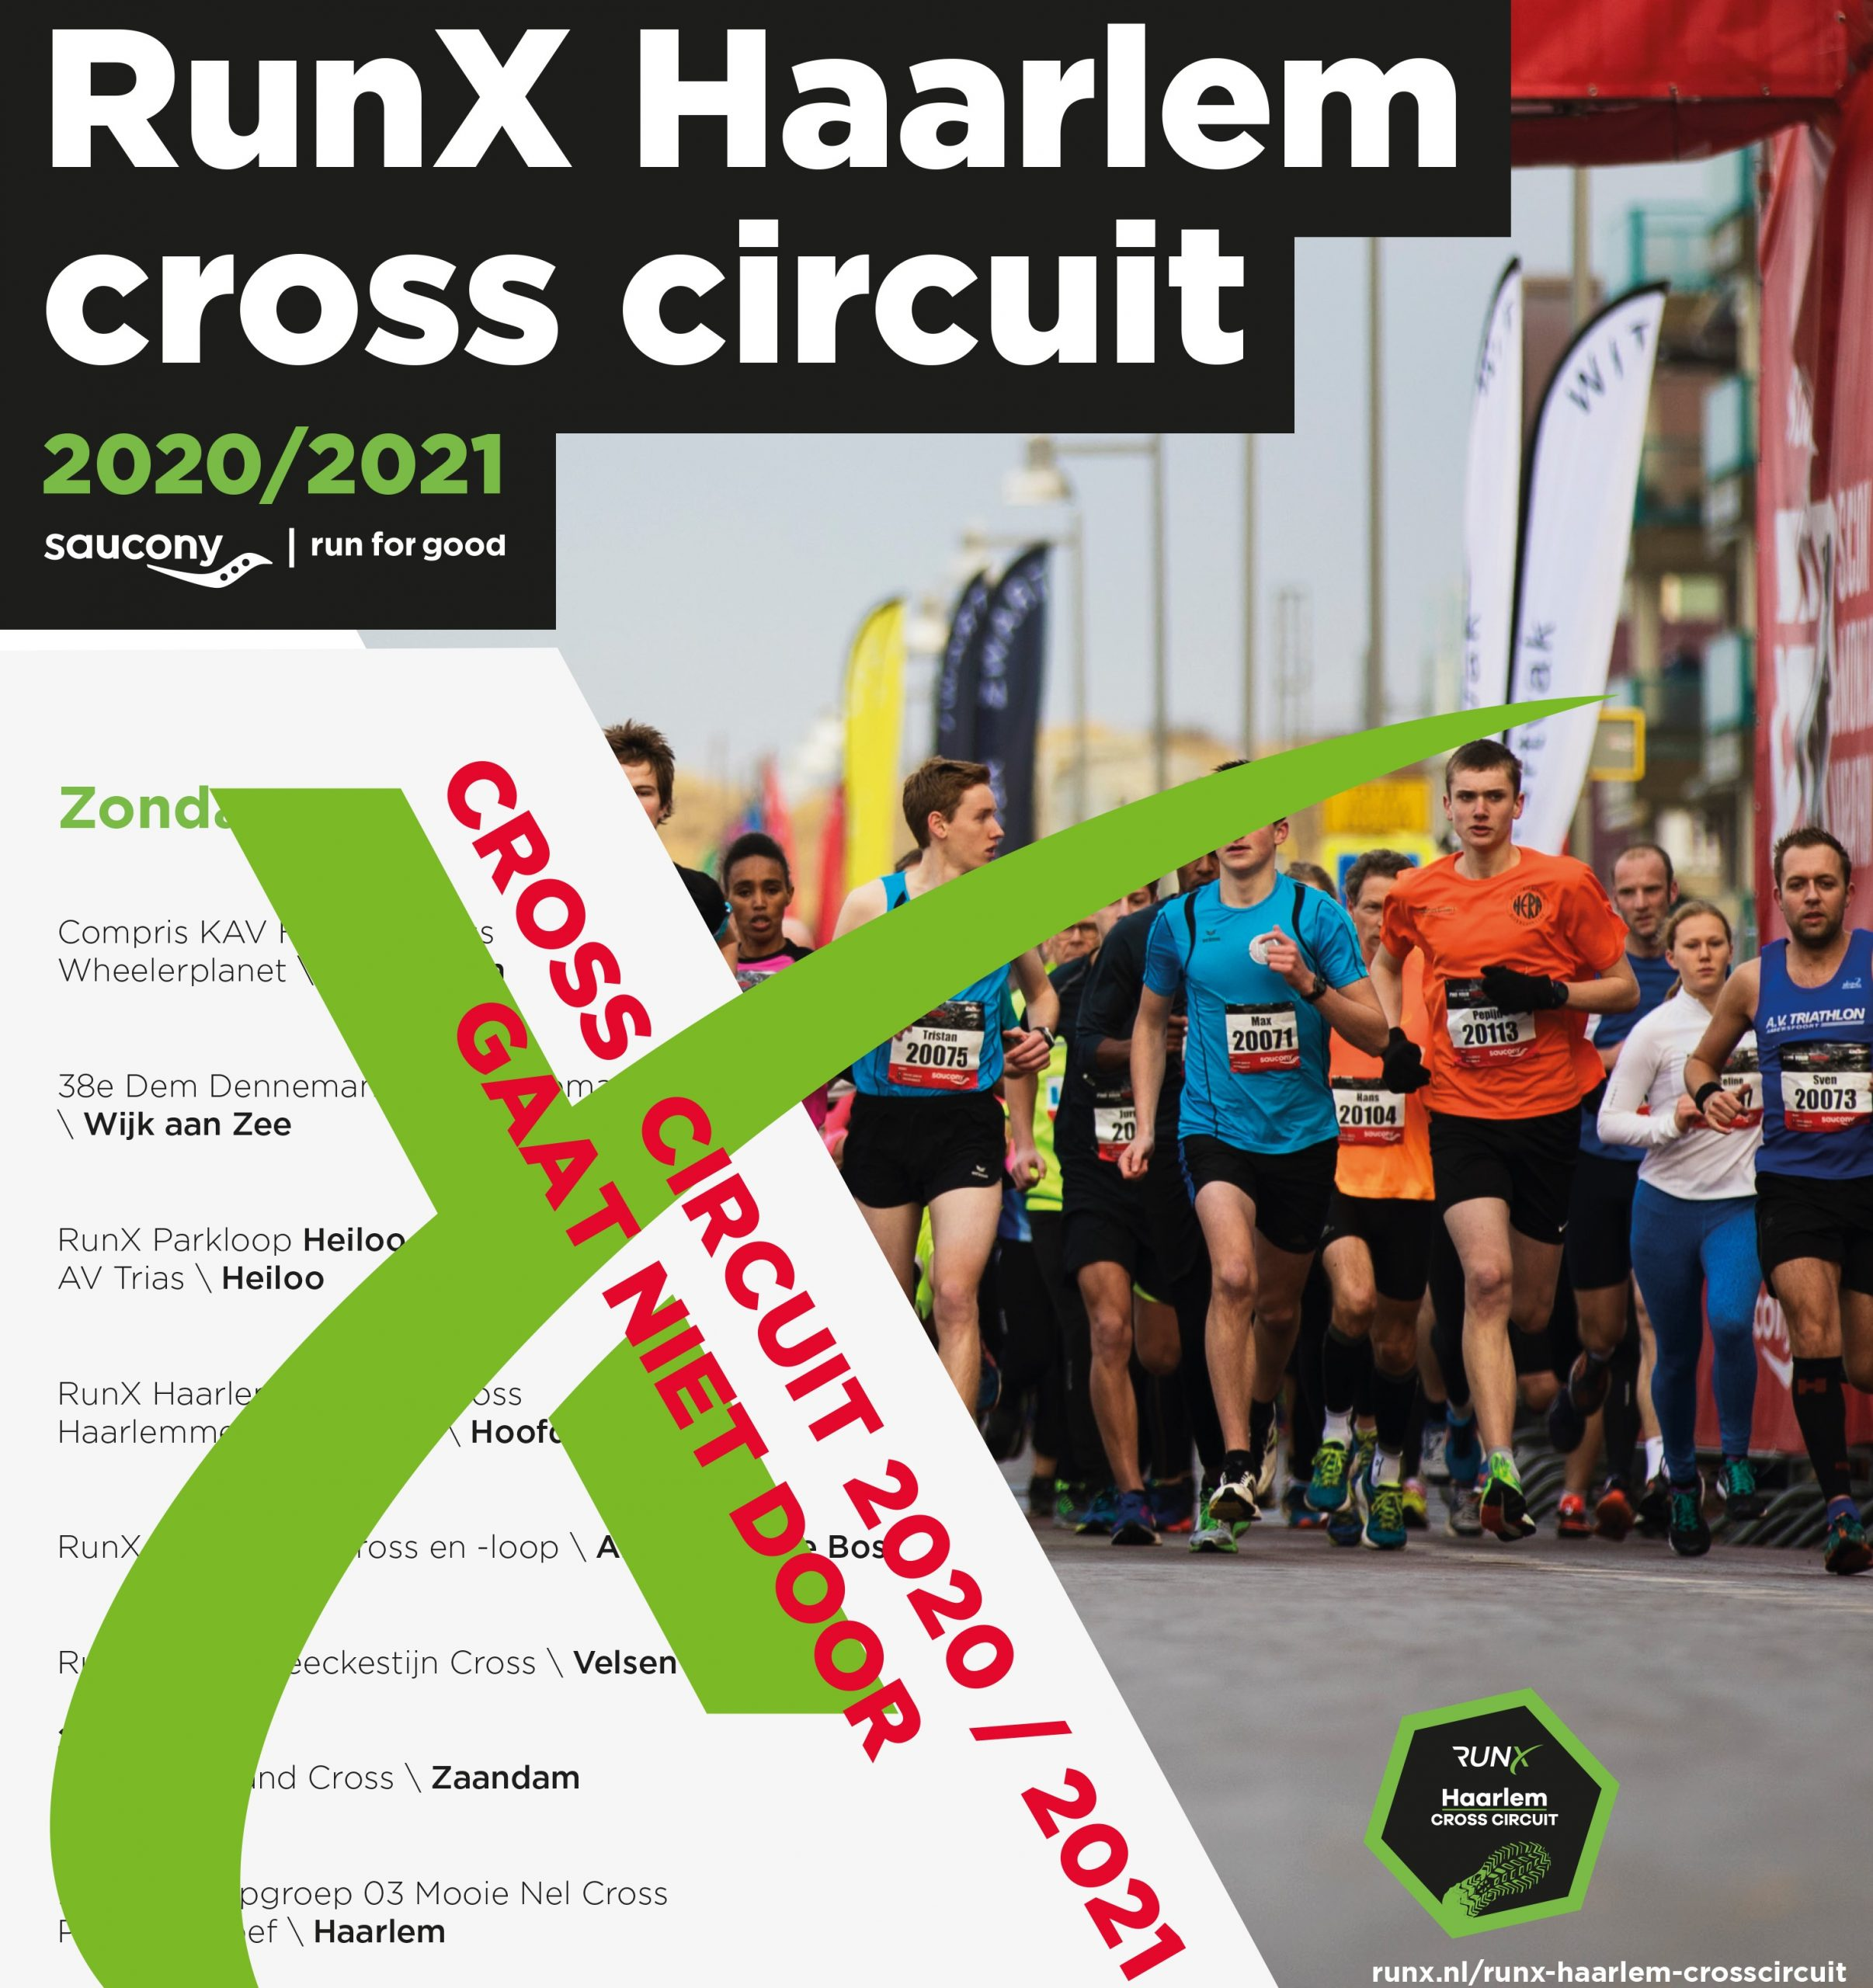 RunX Haarlem Cross Circuit 2020/2021